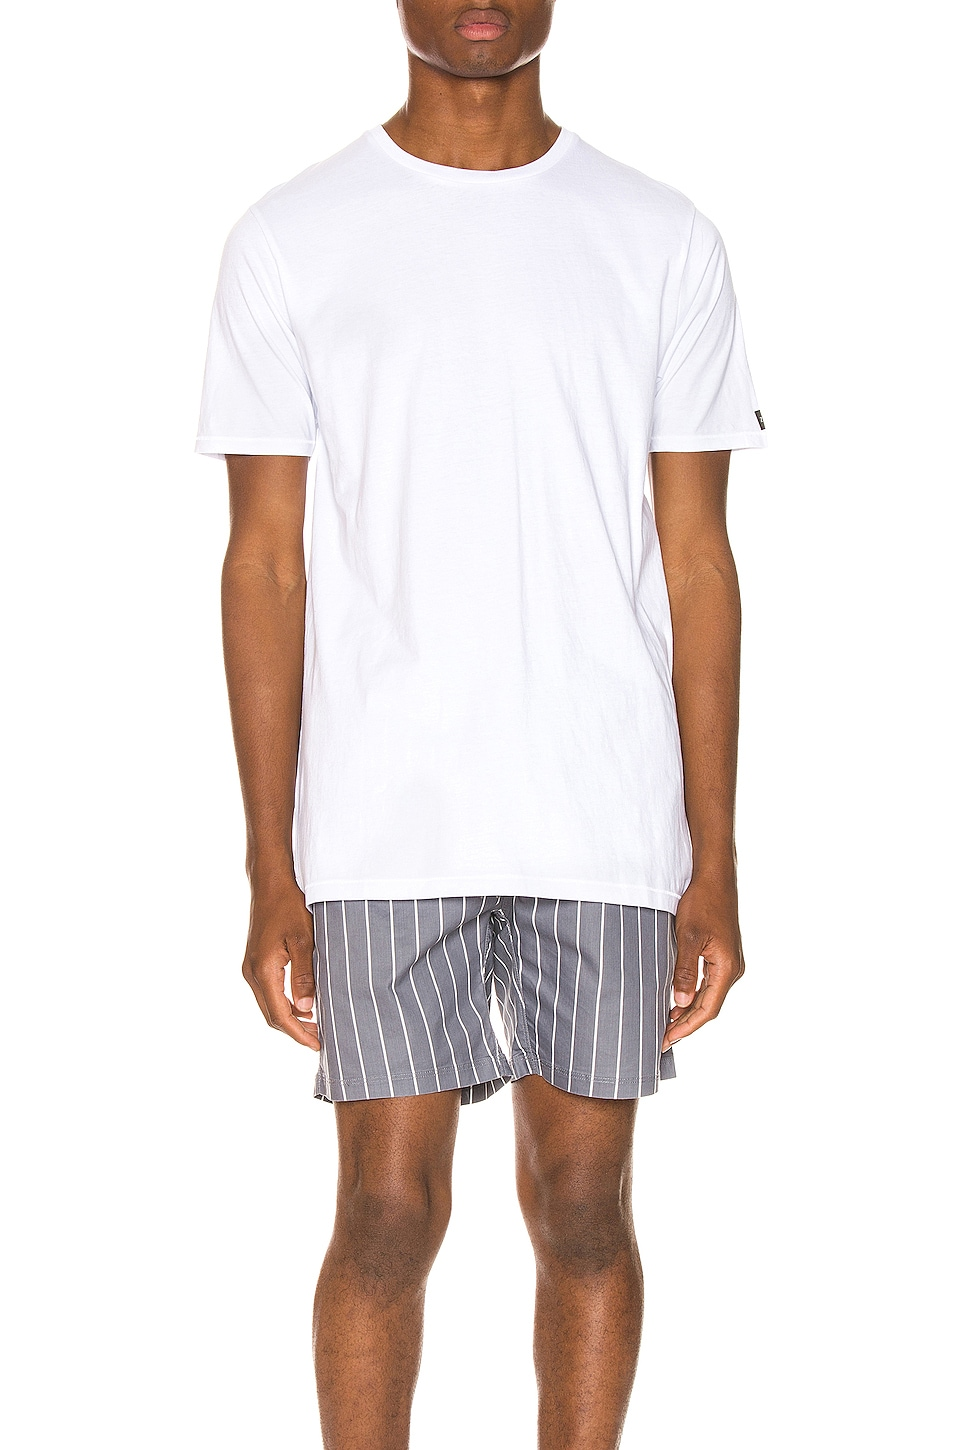 FLCH+YIGE Mens Summer Short Sleeve Top and Shorts Pajama Set